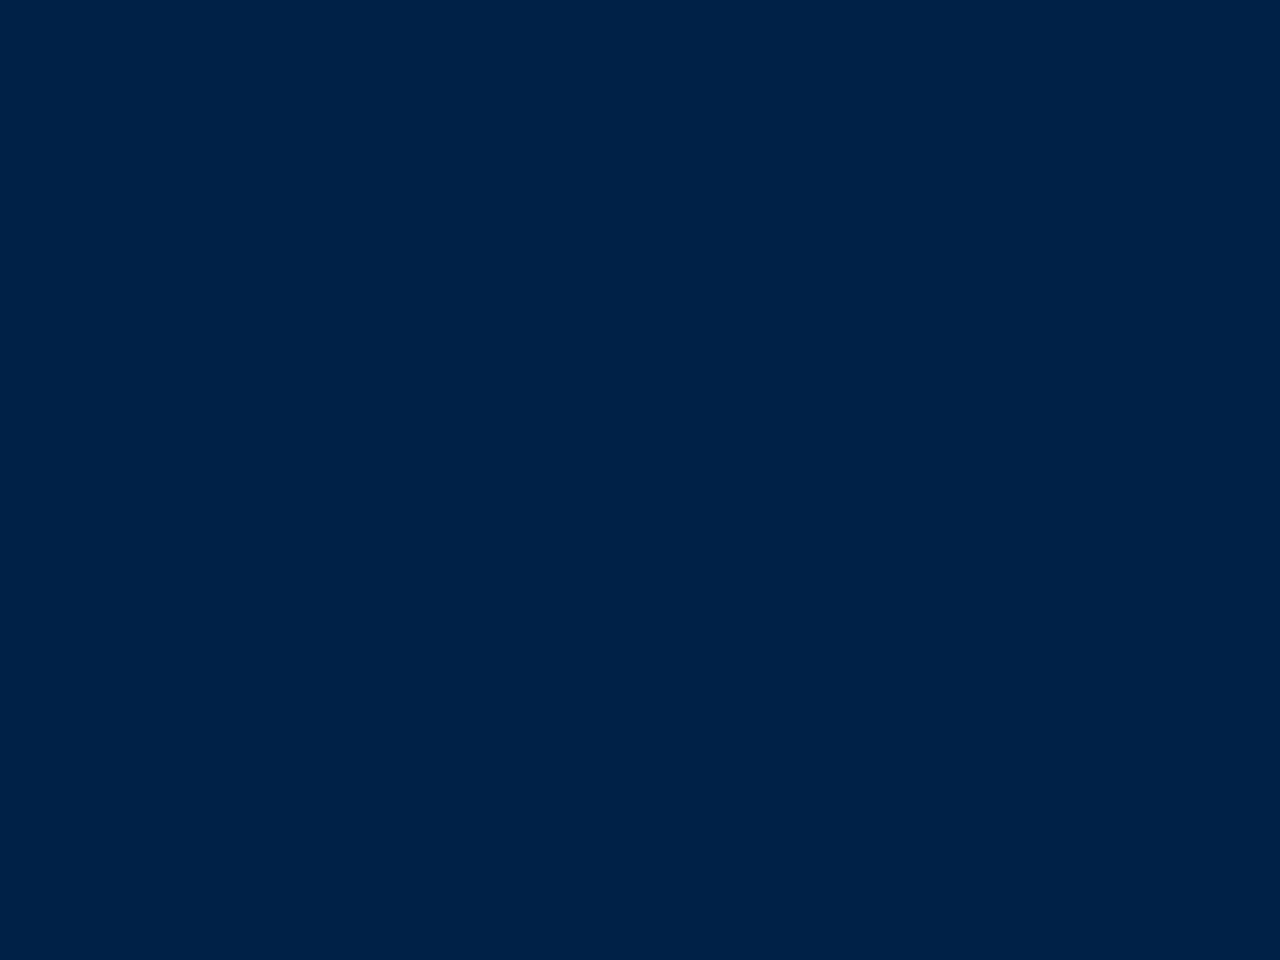 1280x960 Oxford Blue Solid Color Background